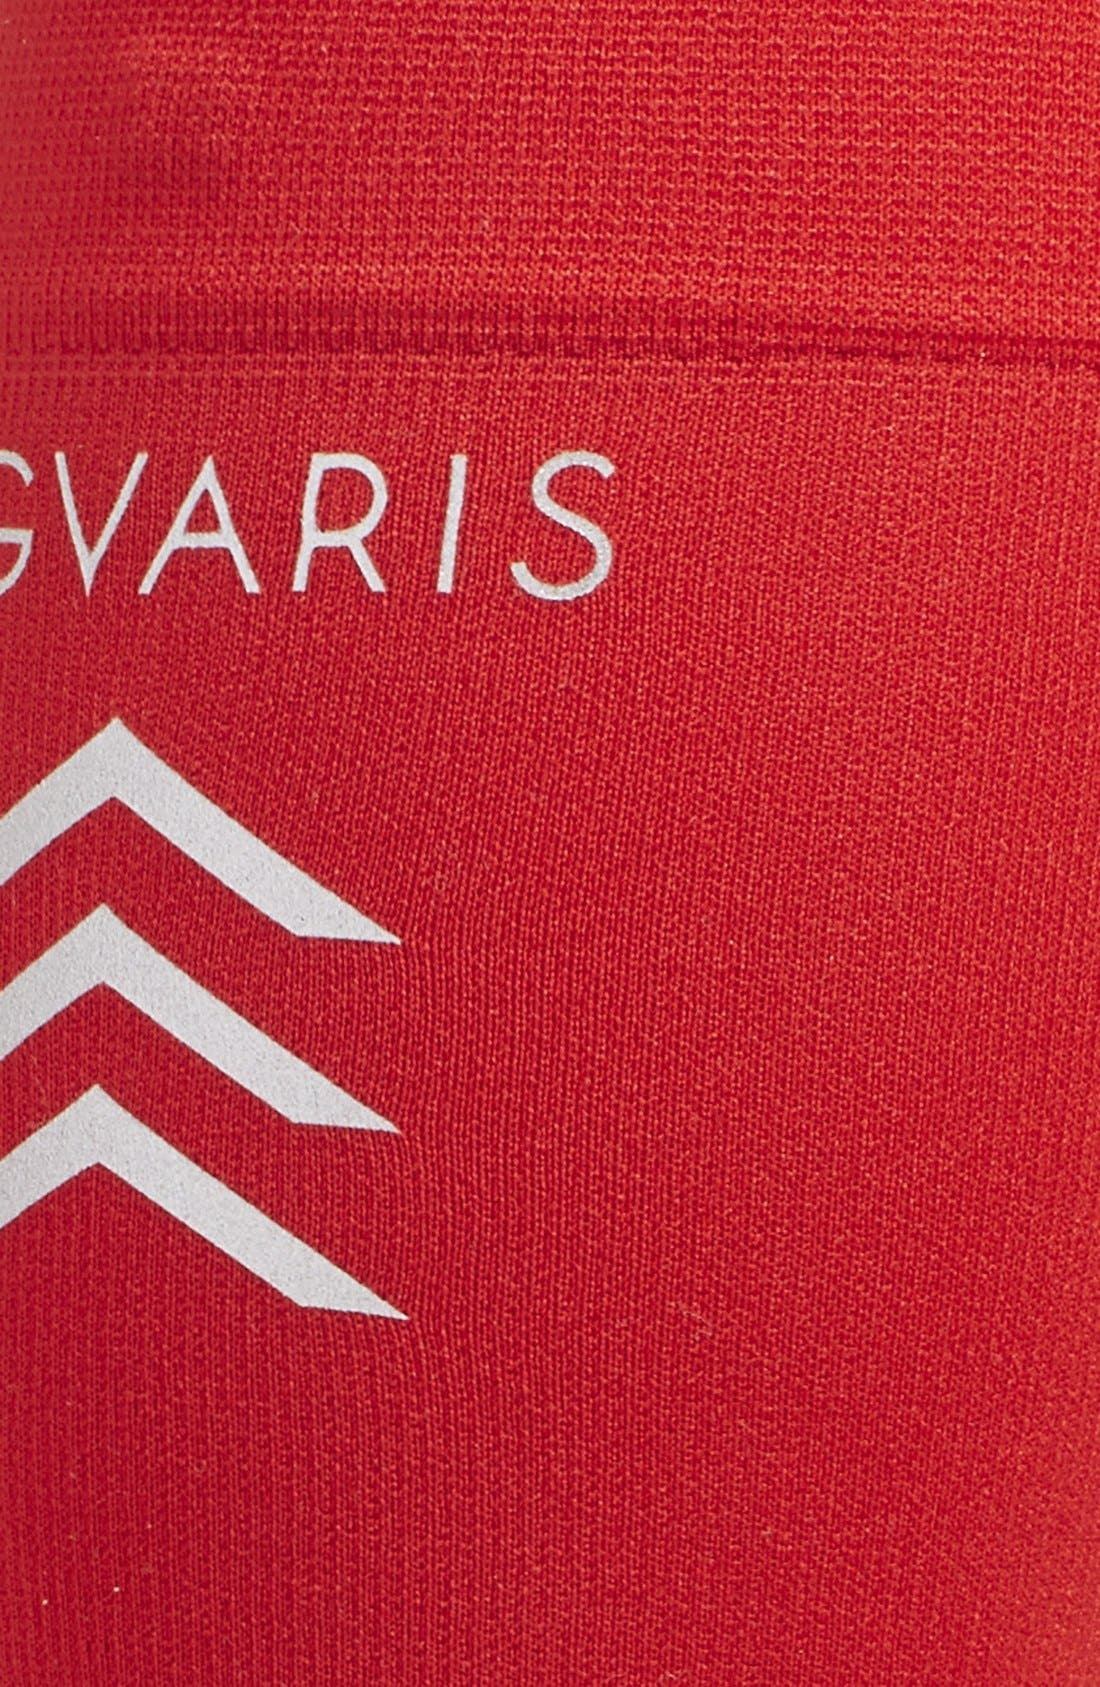 'Sports' Graduated Compression Performance Calf Sleeve,                             Alternate thumbnail 3, color,                             RED